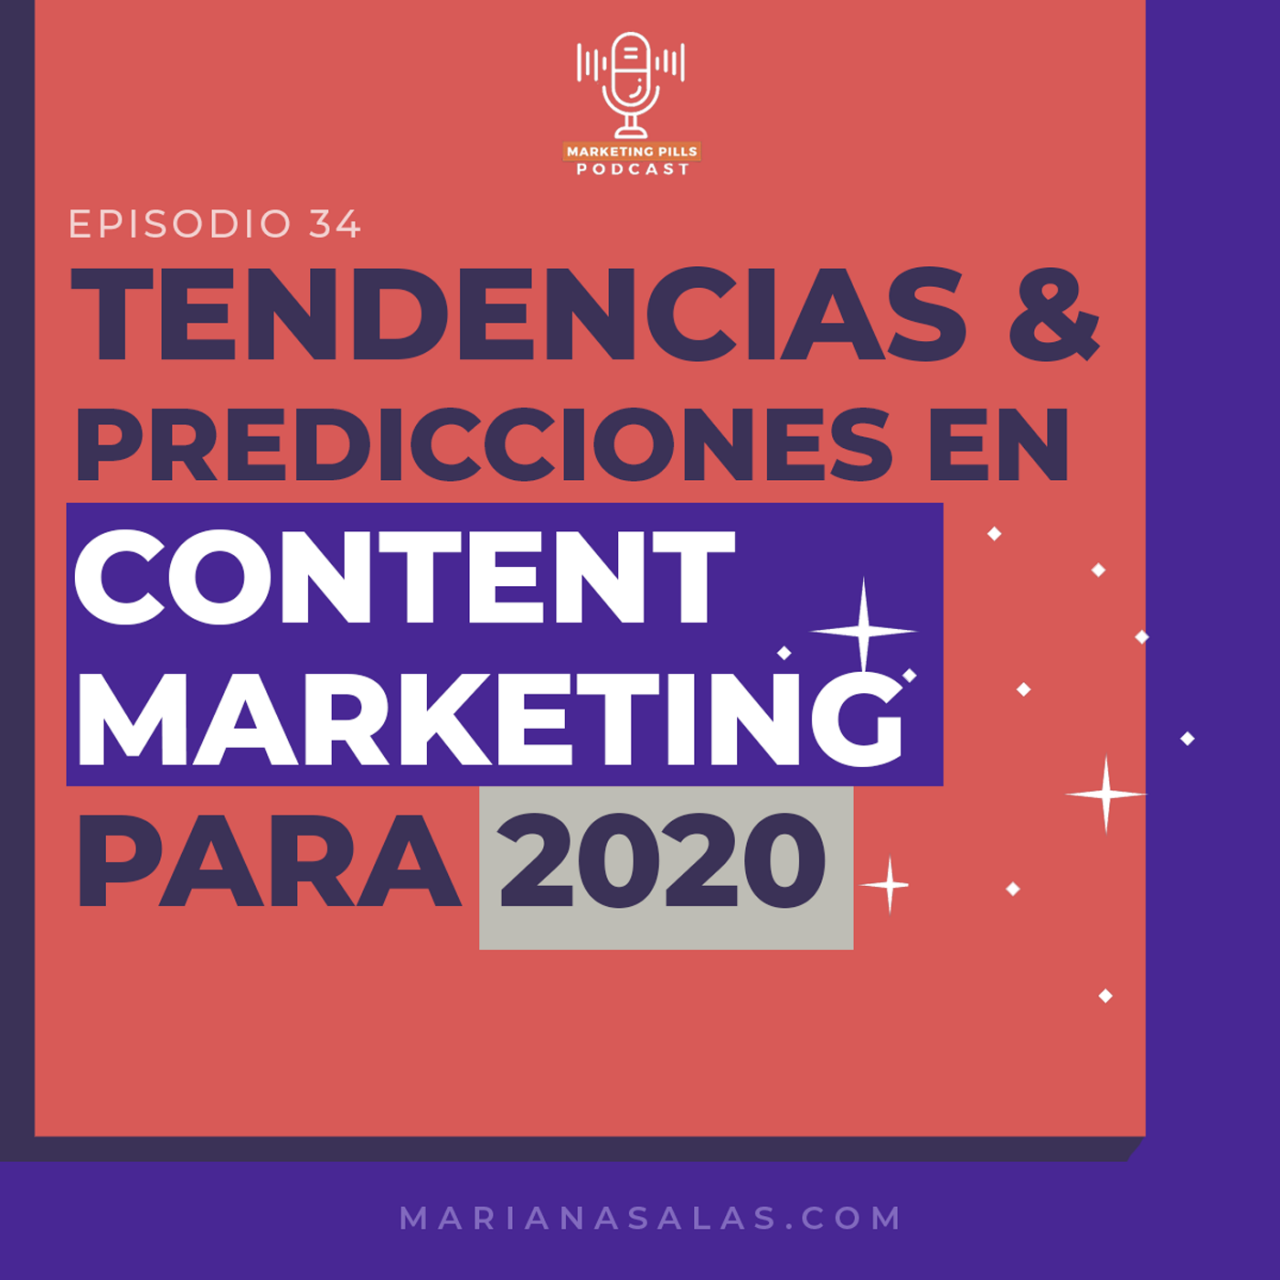 Tendencias y predicciones de content marketing para 2020